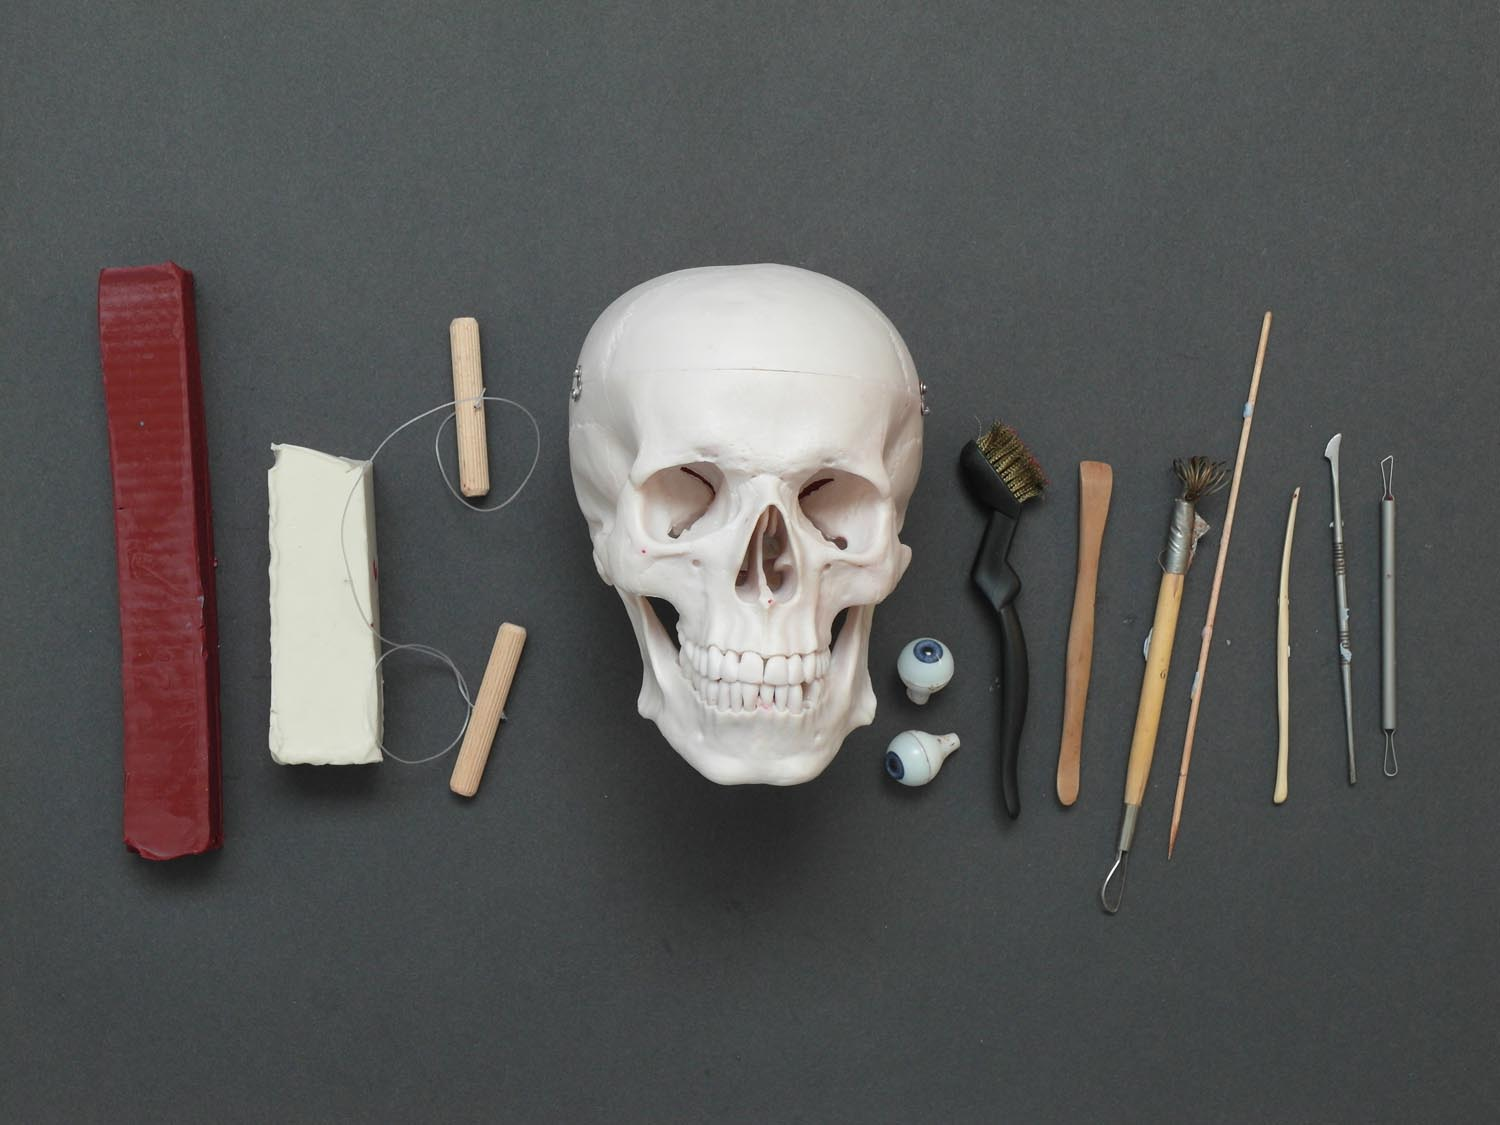 Here are some of the sculpting tools and materials I used to put this piece together.